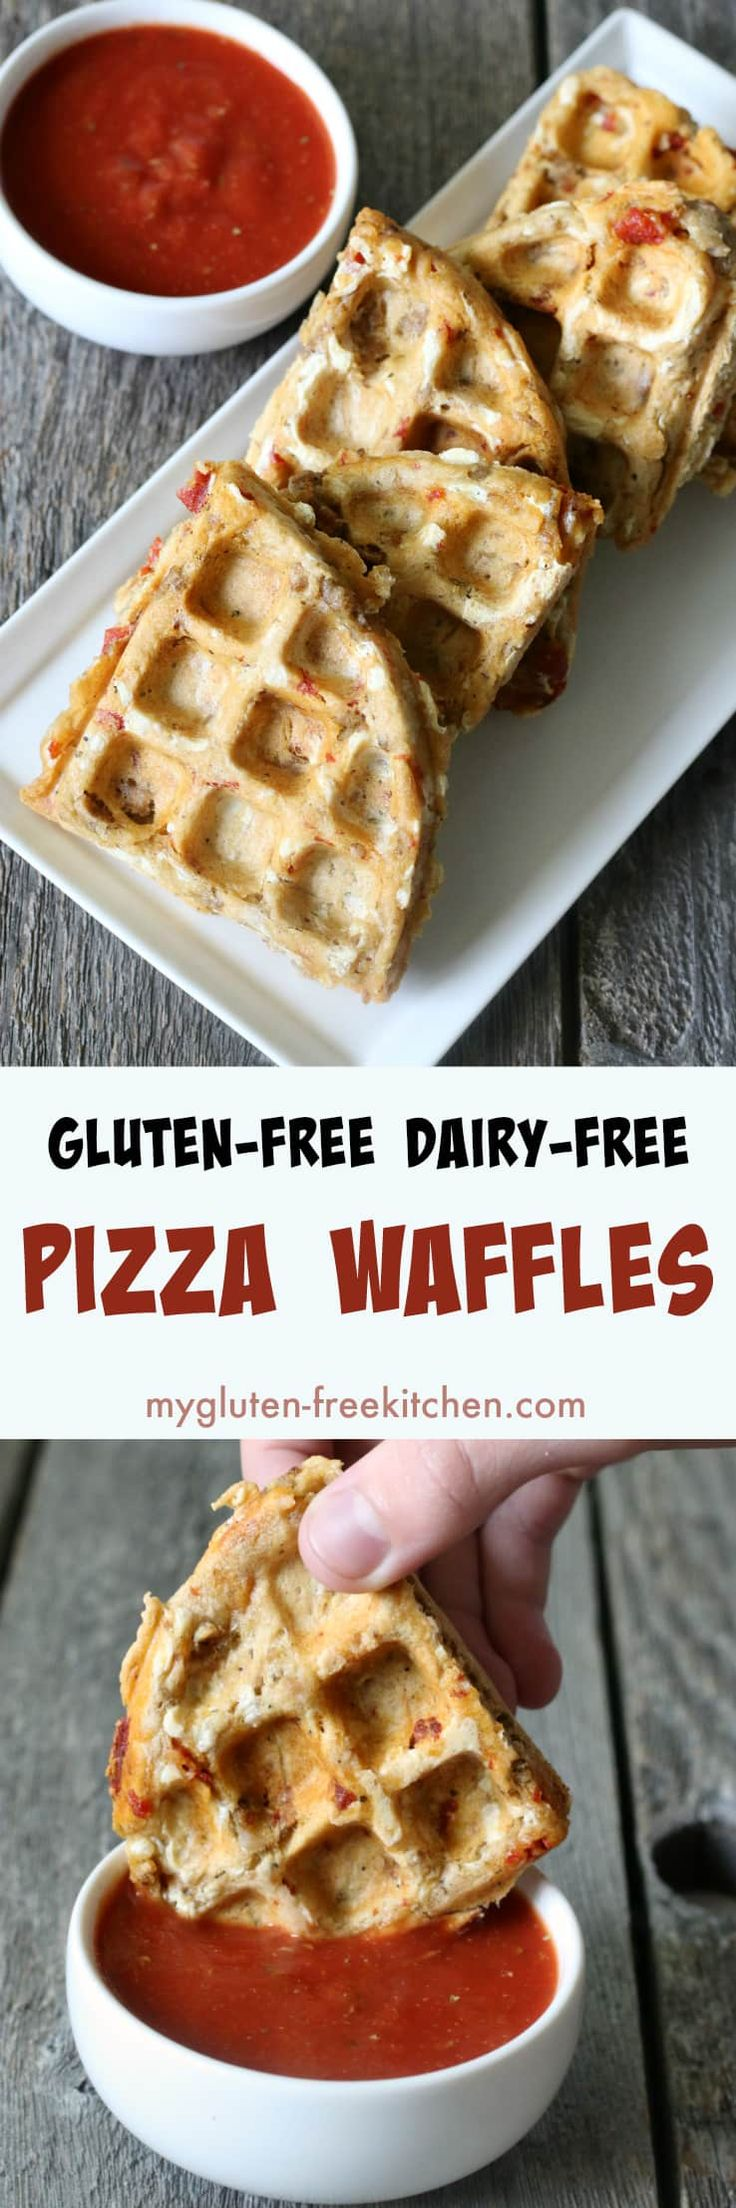 Gluten-free Dairy-free Pizza Waffles Recipe. Free of top 8 allergens too! Fun lunch idea!